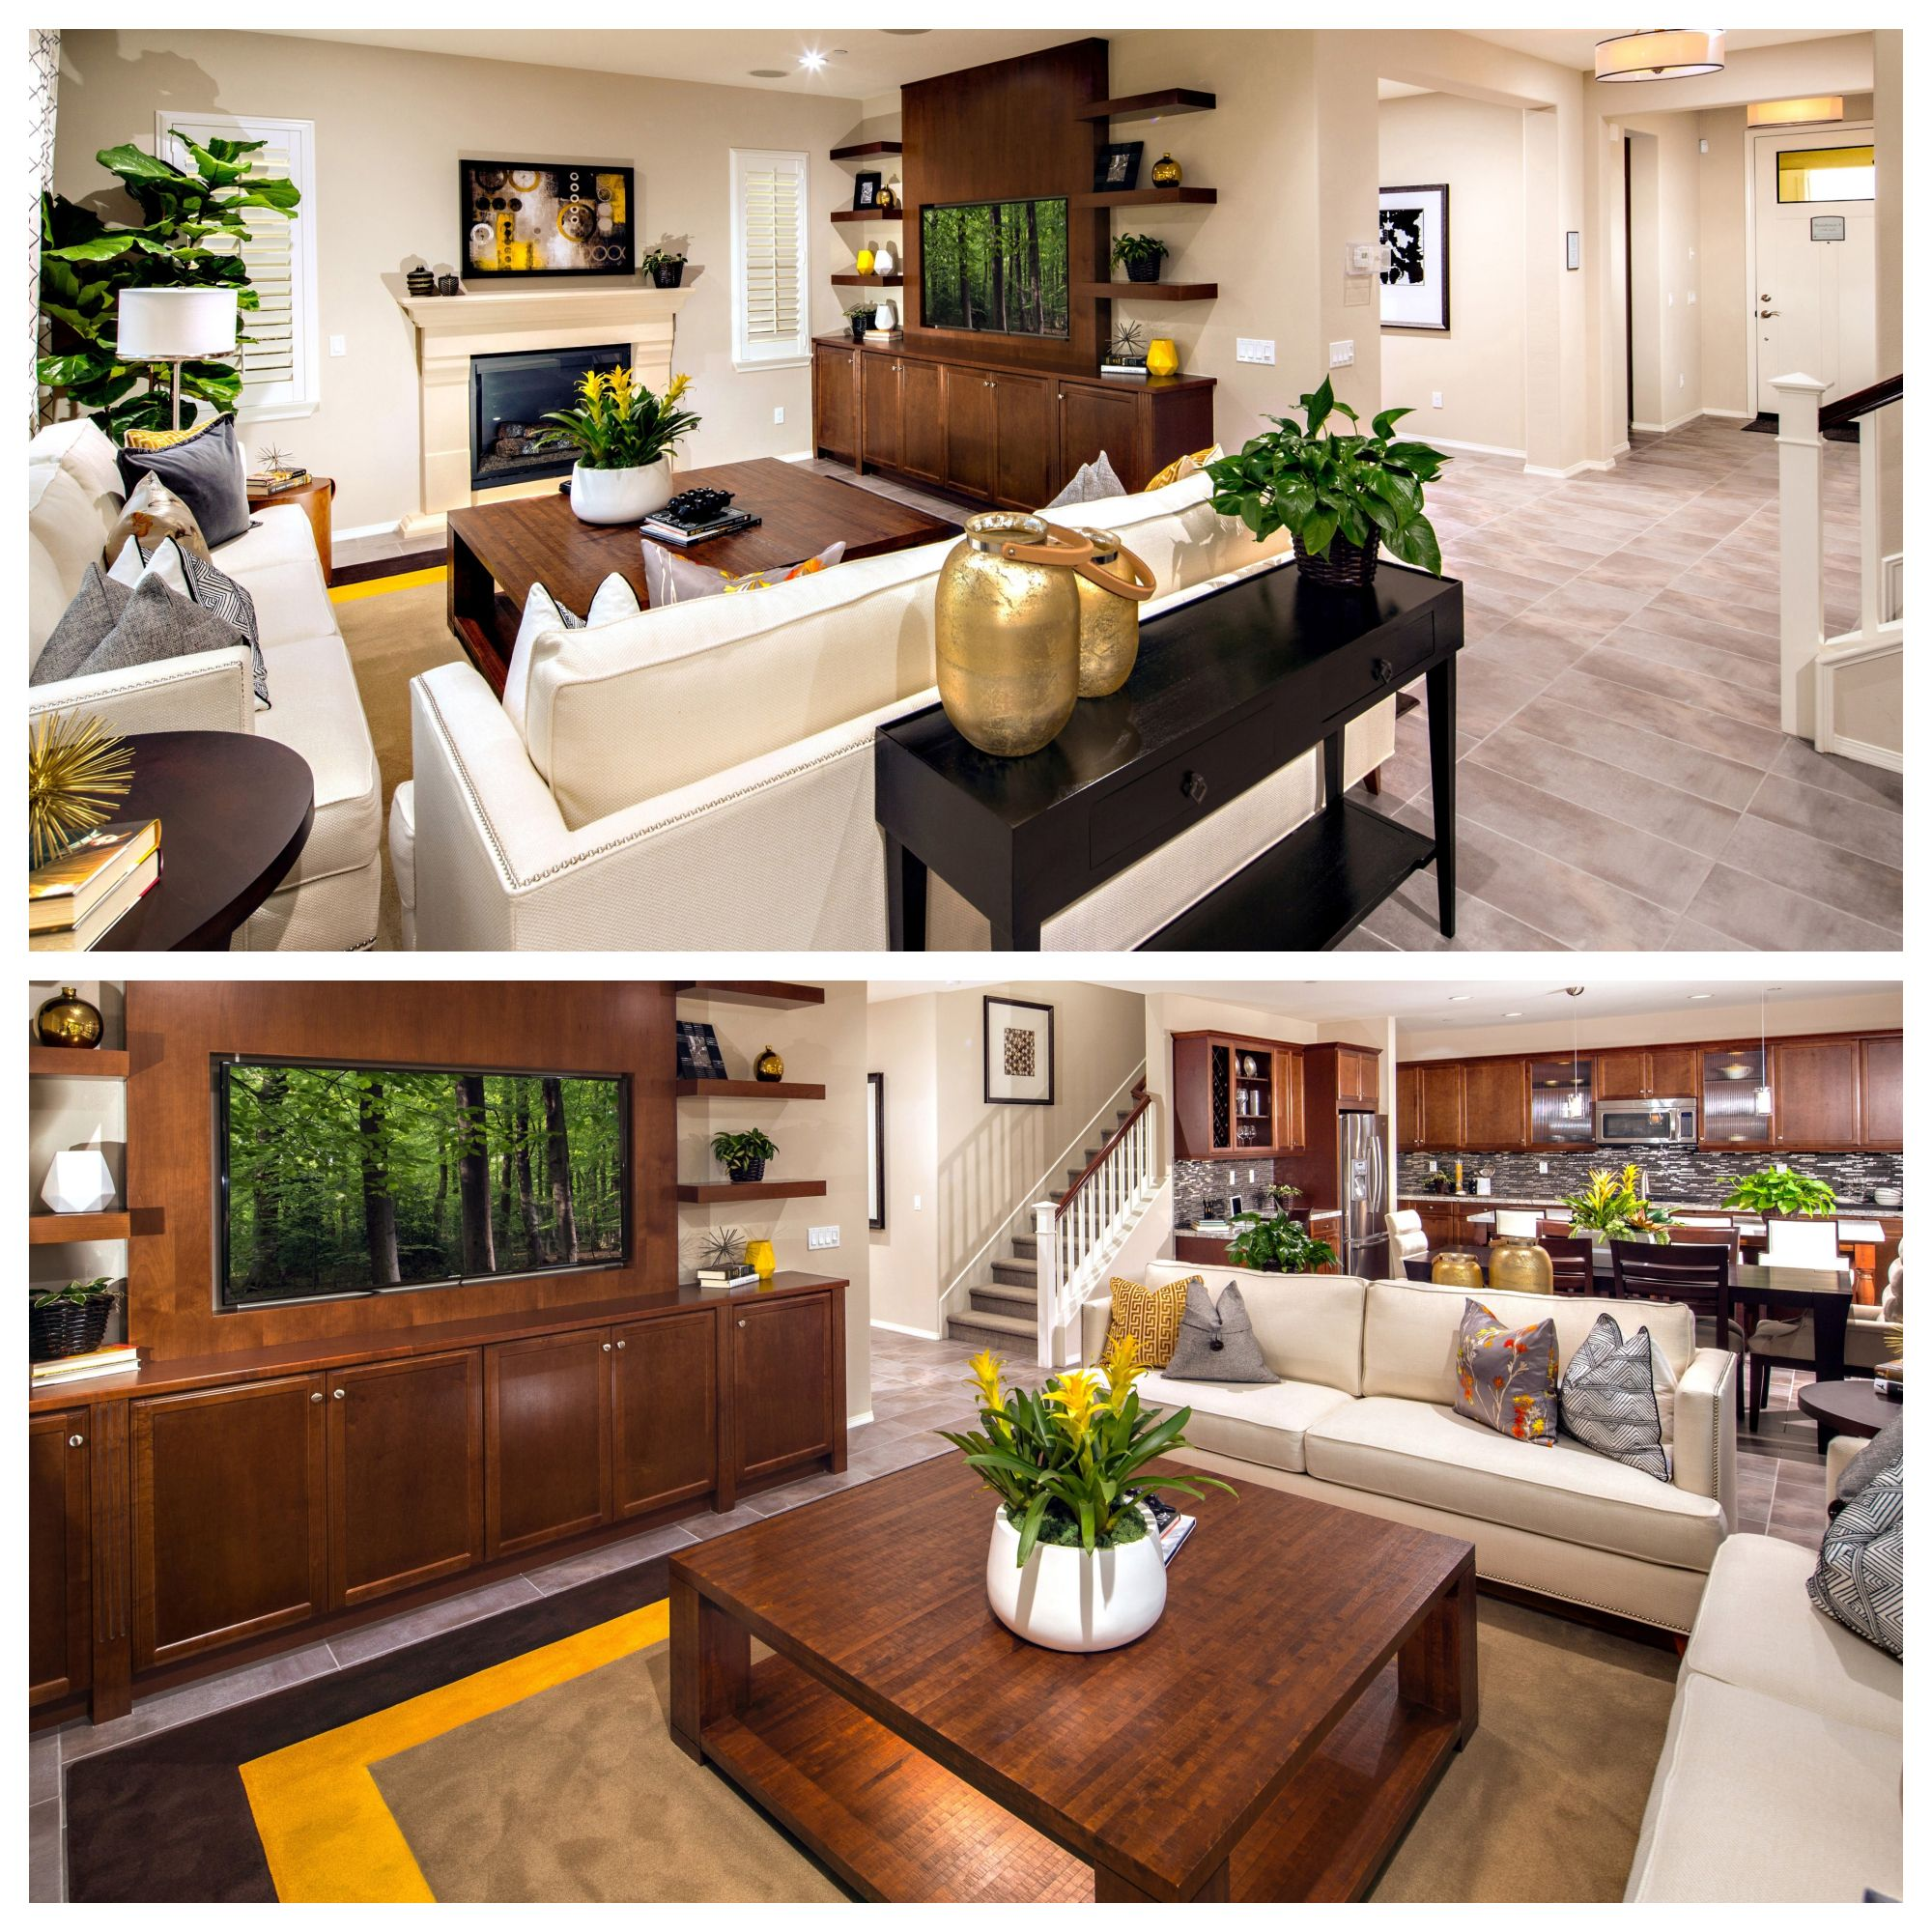 Great Home Design Ideas: Same Great Room, Different VIEWS! Is This One You Would